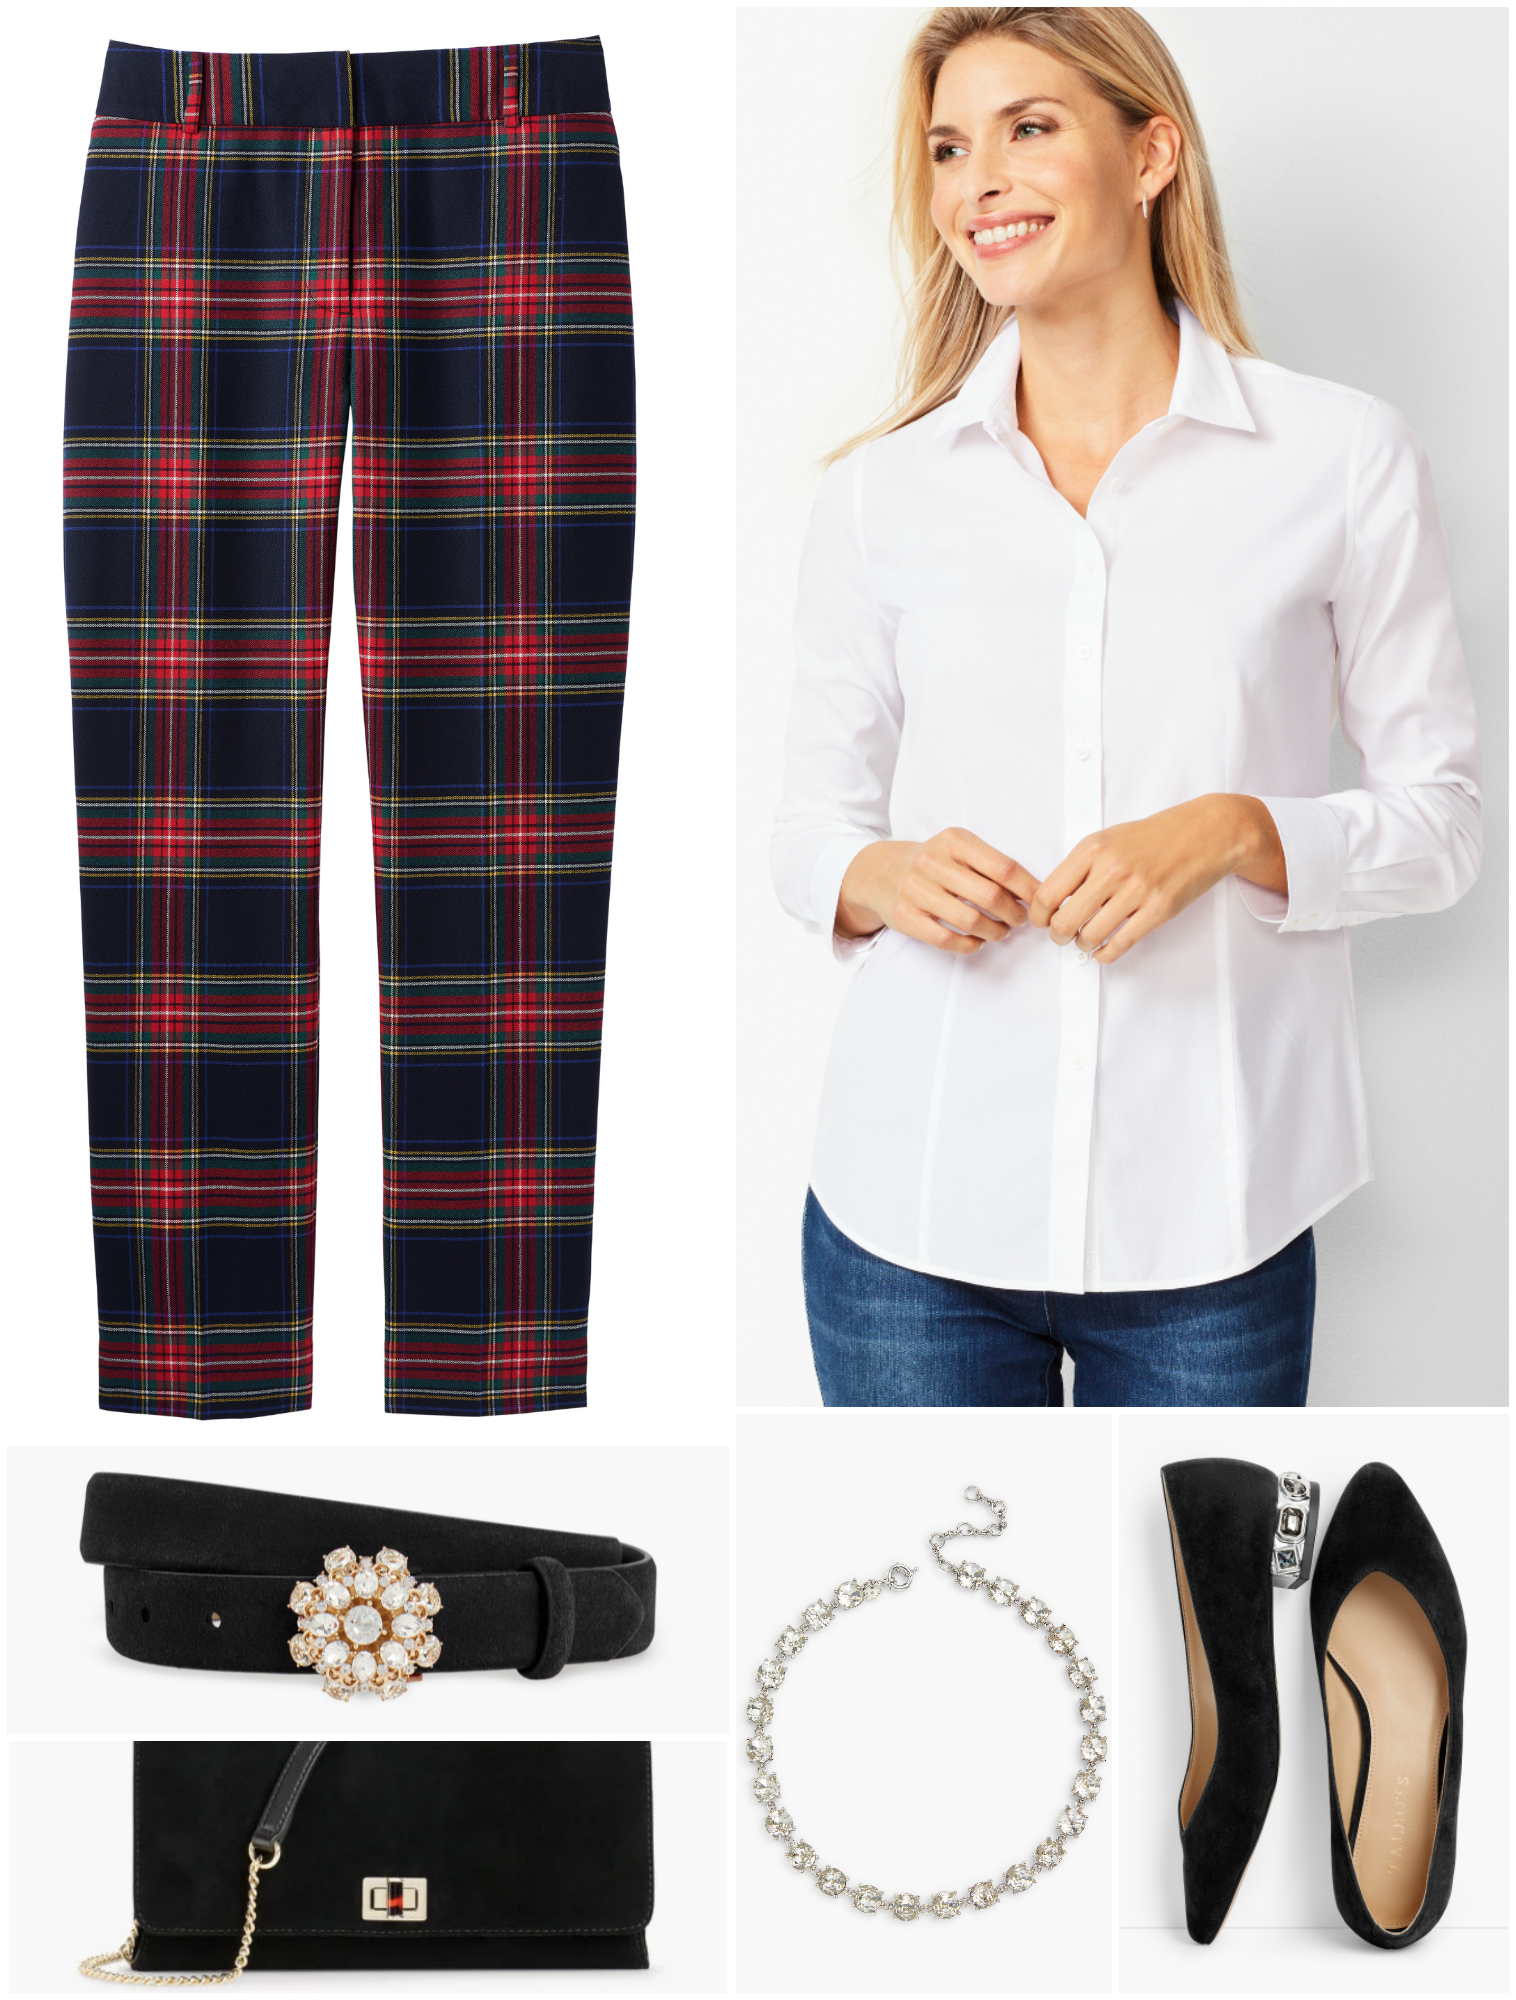 Plaid pants with a white shirt is classic, chic, and incredibly versatile.  With luxe accessories, this is perfect for a holiday party.  Remove the necklace and add a cardigan for the office.